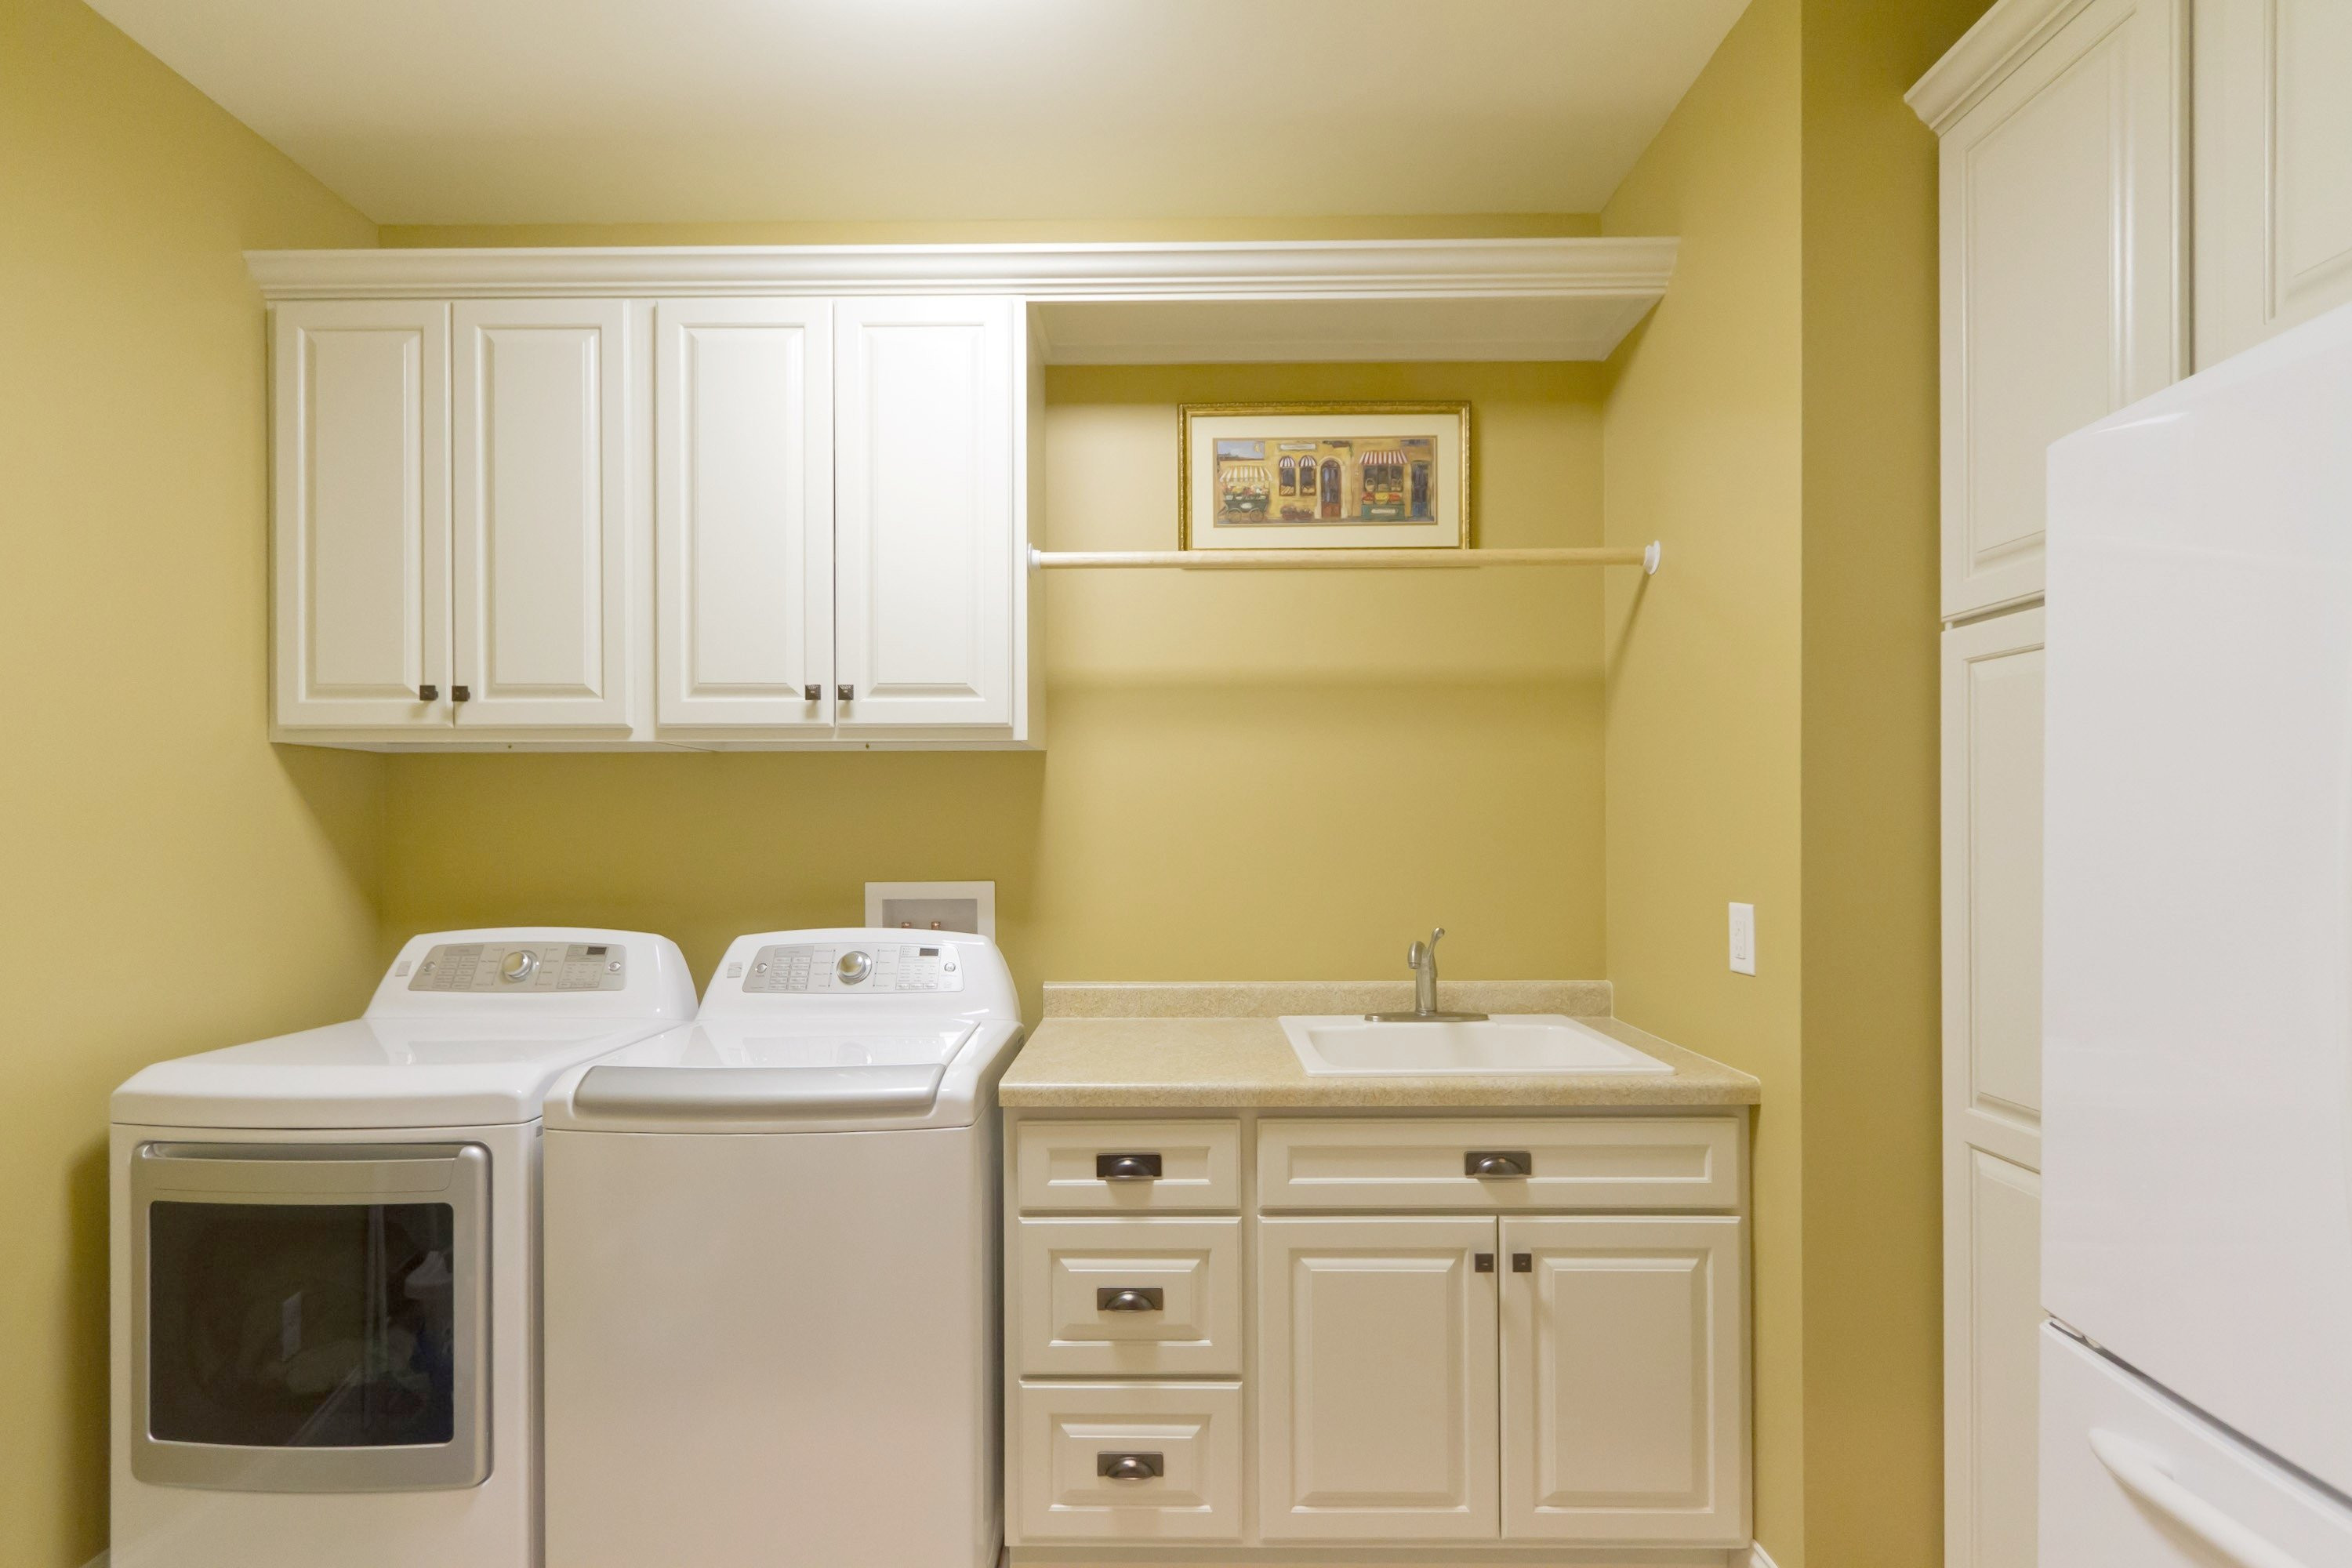 Best ideas about Lowes Laundry Room Cabinets . Save or Pin Lowes Utility Room Cabinets Now.